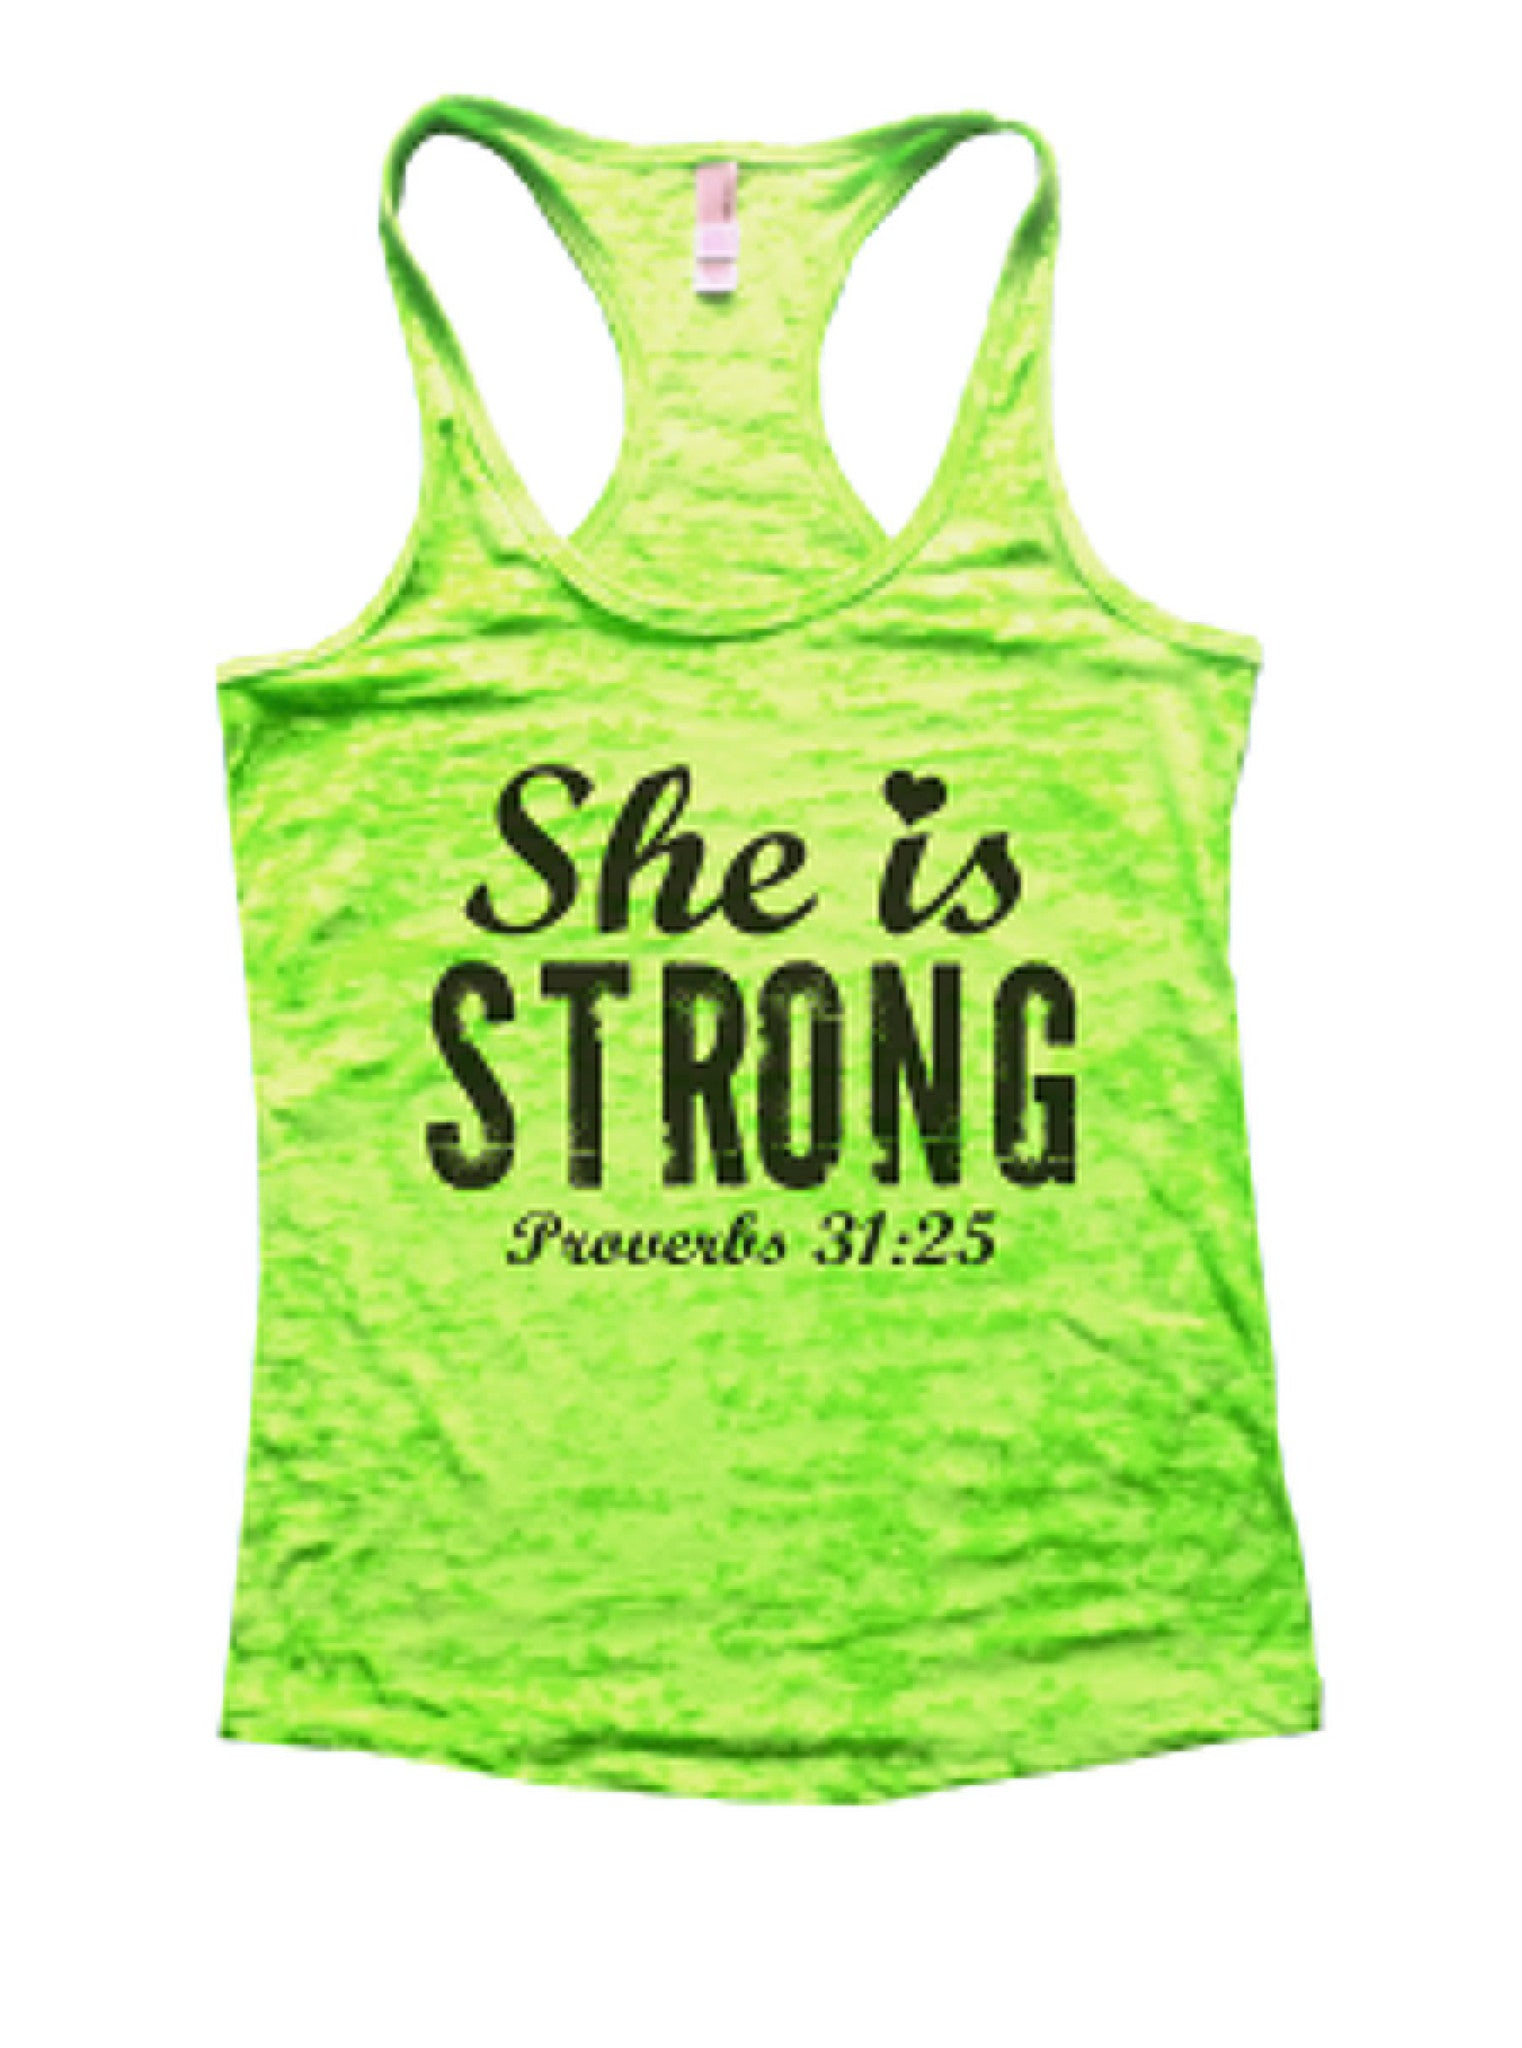 She Is Strong Proverbs 31:25 Burnout Tank Top By BurnoutTankTops.com - 939 - Funny Shirts Tank Tops Burnouts and Triblends  - 1